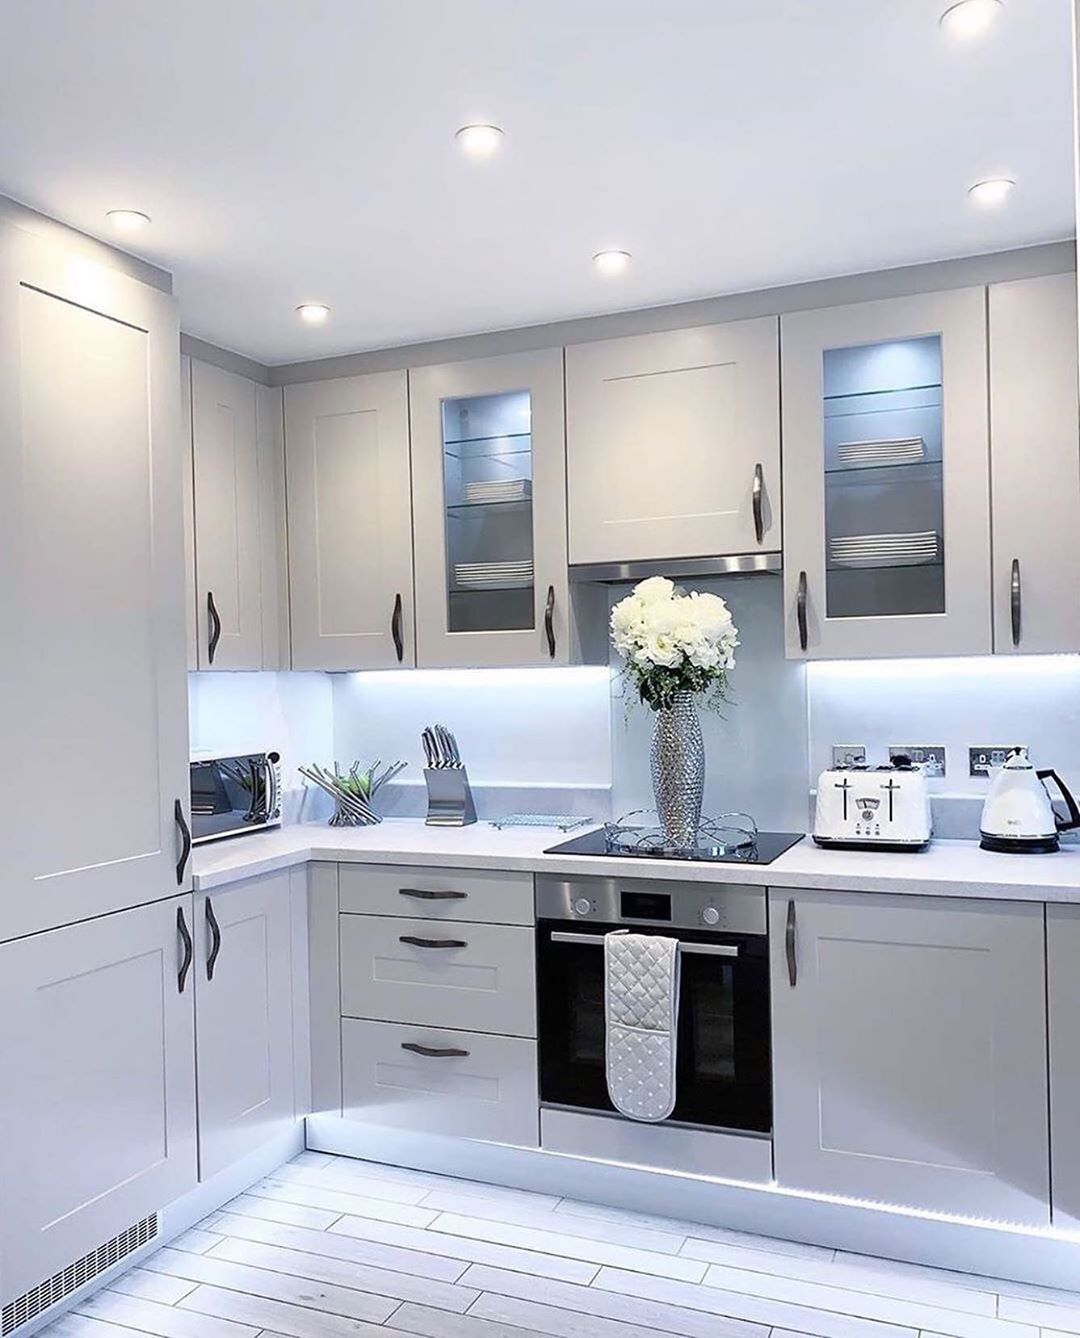 Home Decor Inspiration On Instagram Lovely Kitchen With Beautiful Decor What Do You Notice Modern Kitchen Design Kitchen Room Design Kitchen Design Small Home design kitchen room